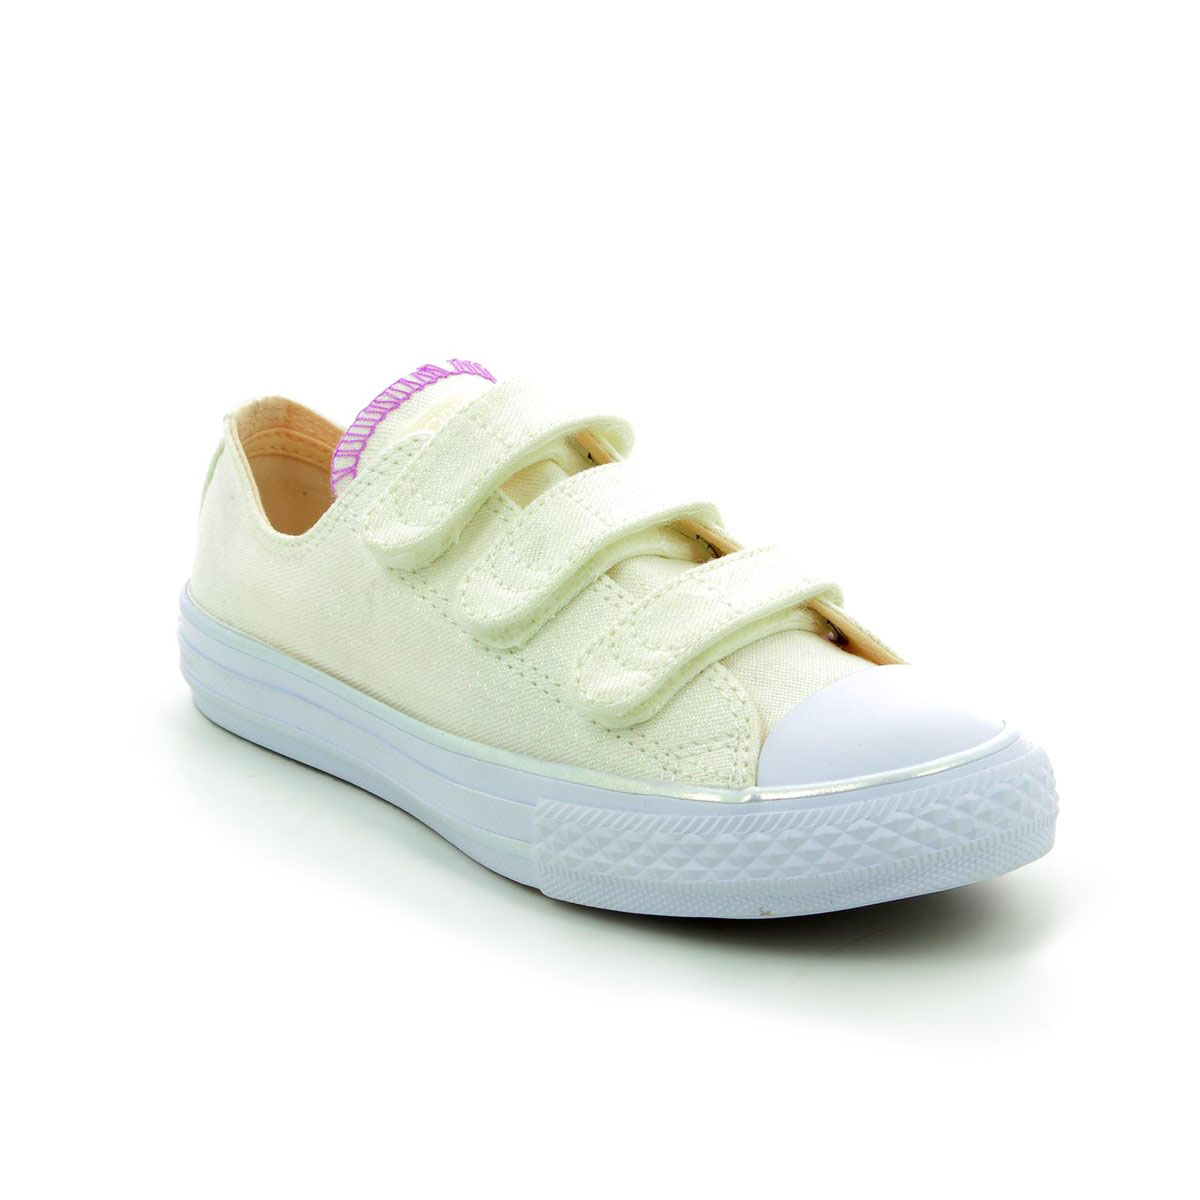 Baby White Converse Pram Shoes 656041c 102 Chuck Taylor All Star 3v Ox Velcro